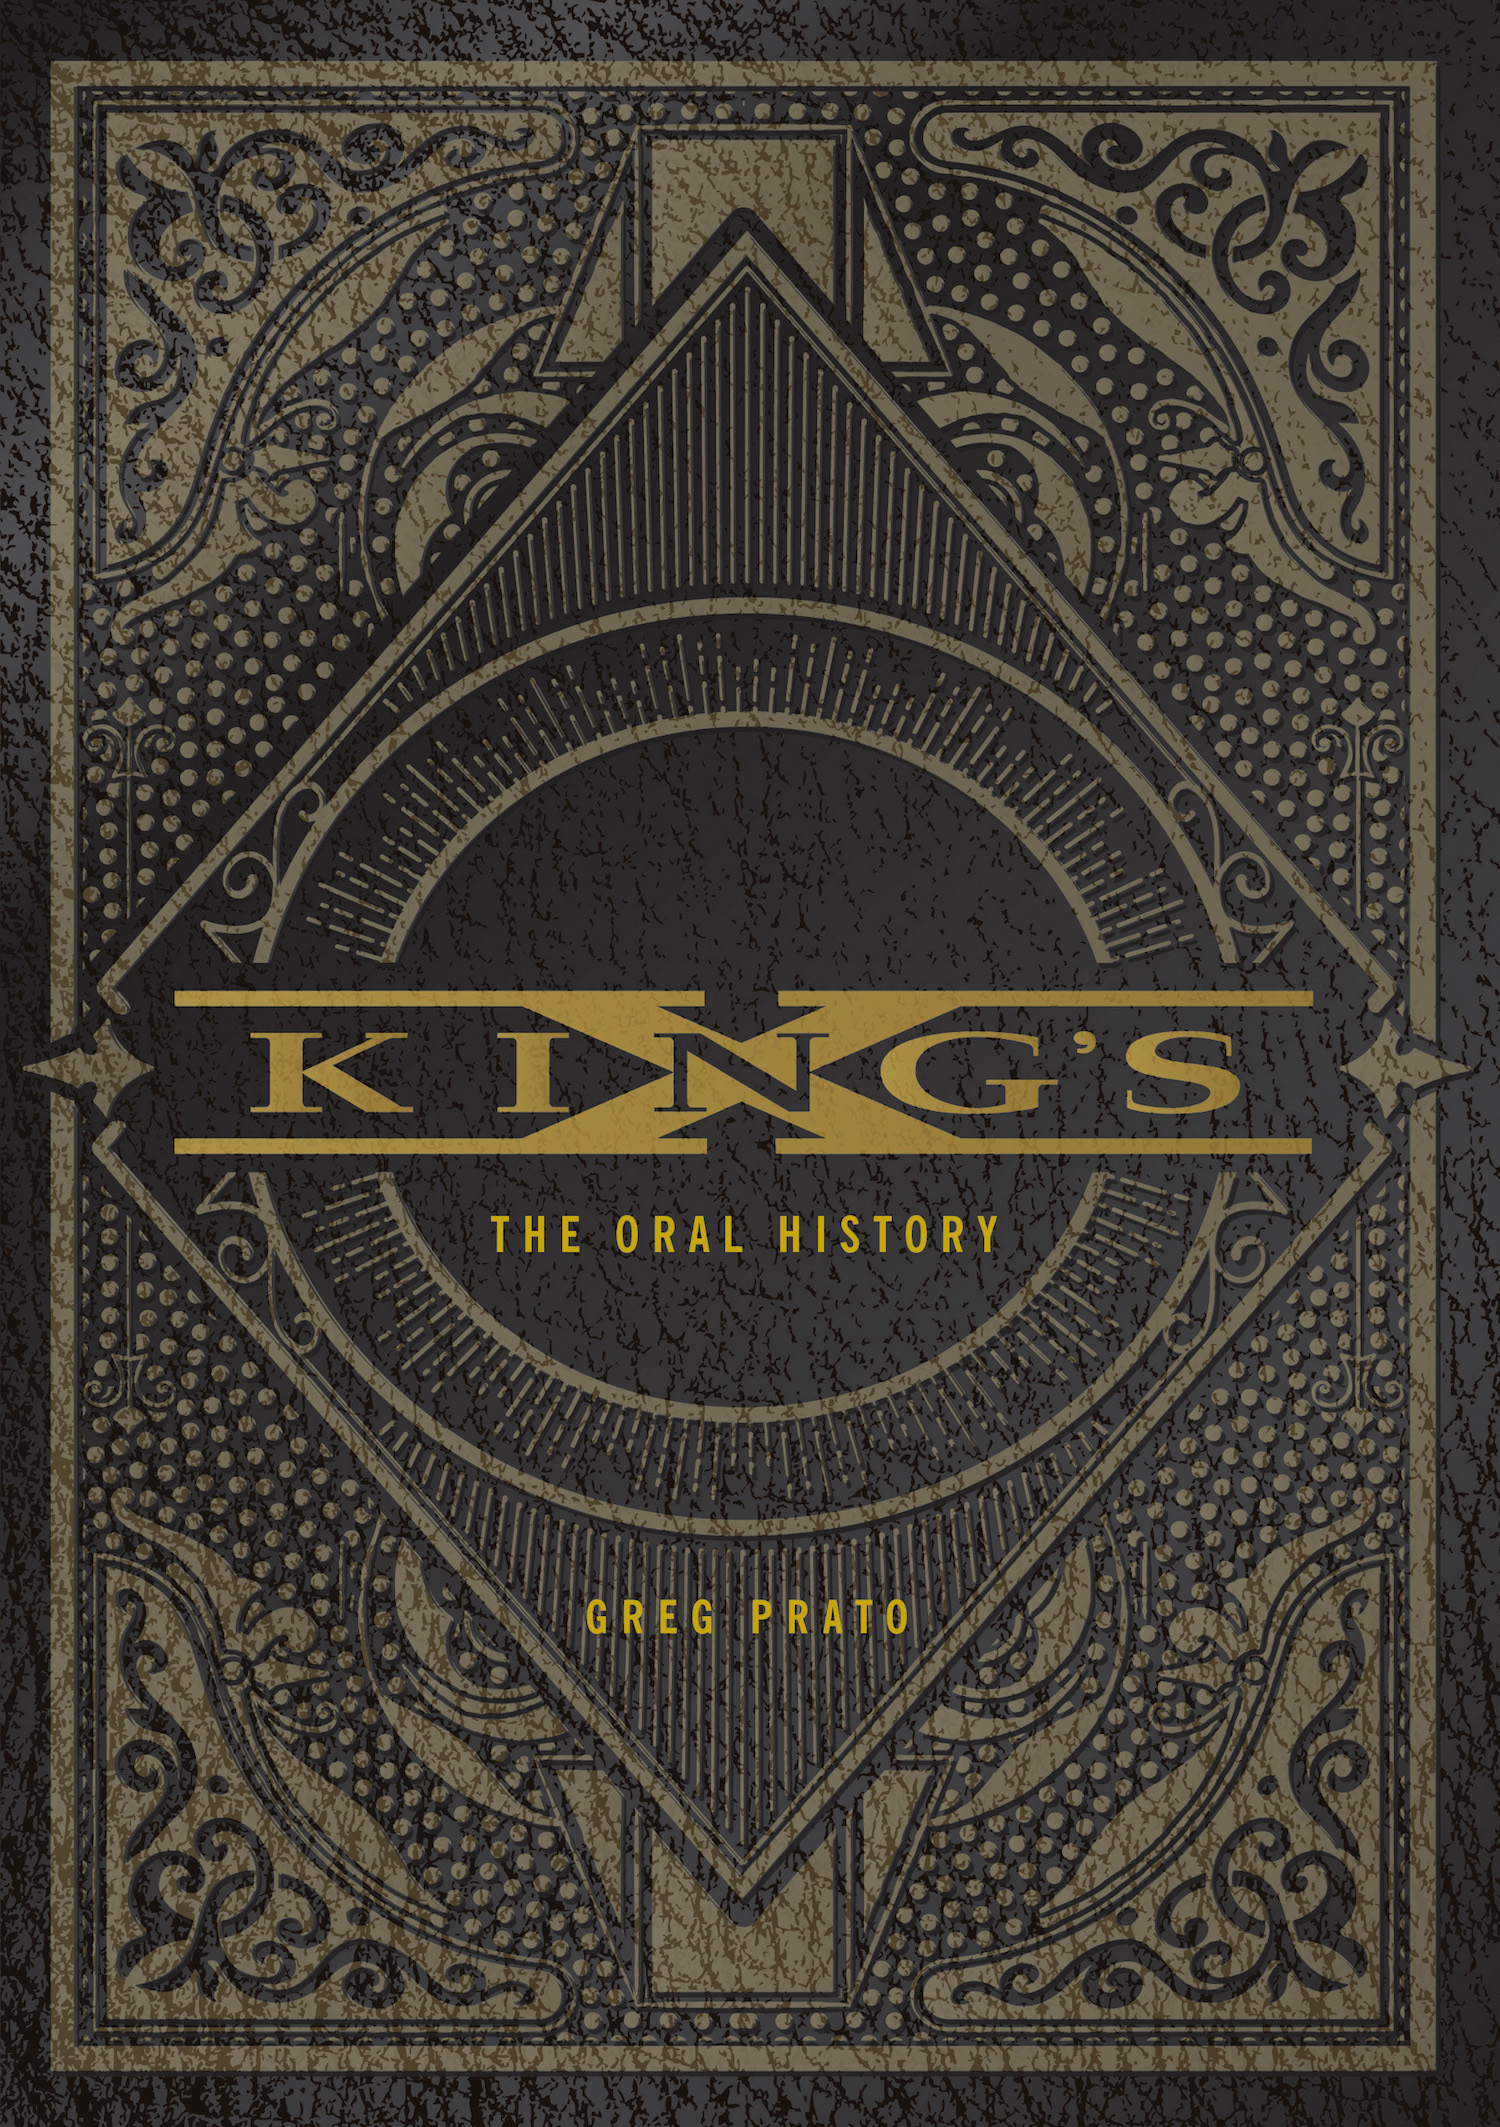 The Time King's X Opened for AC/DC - Excerpt from New Book King's X